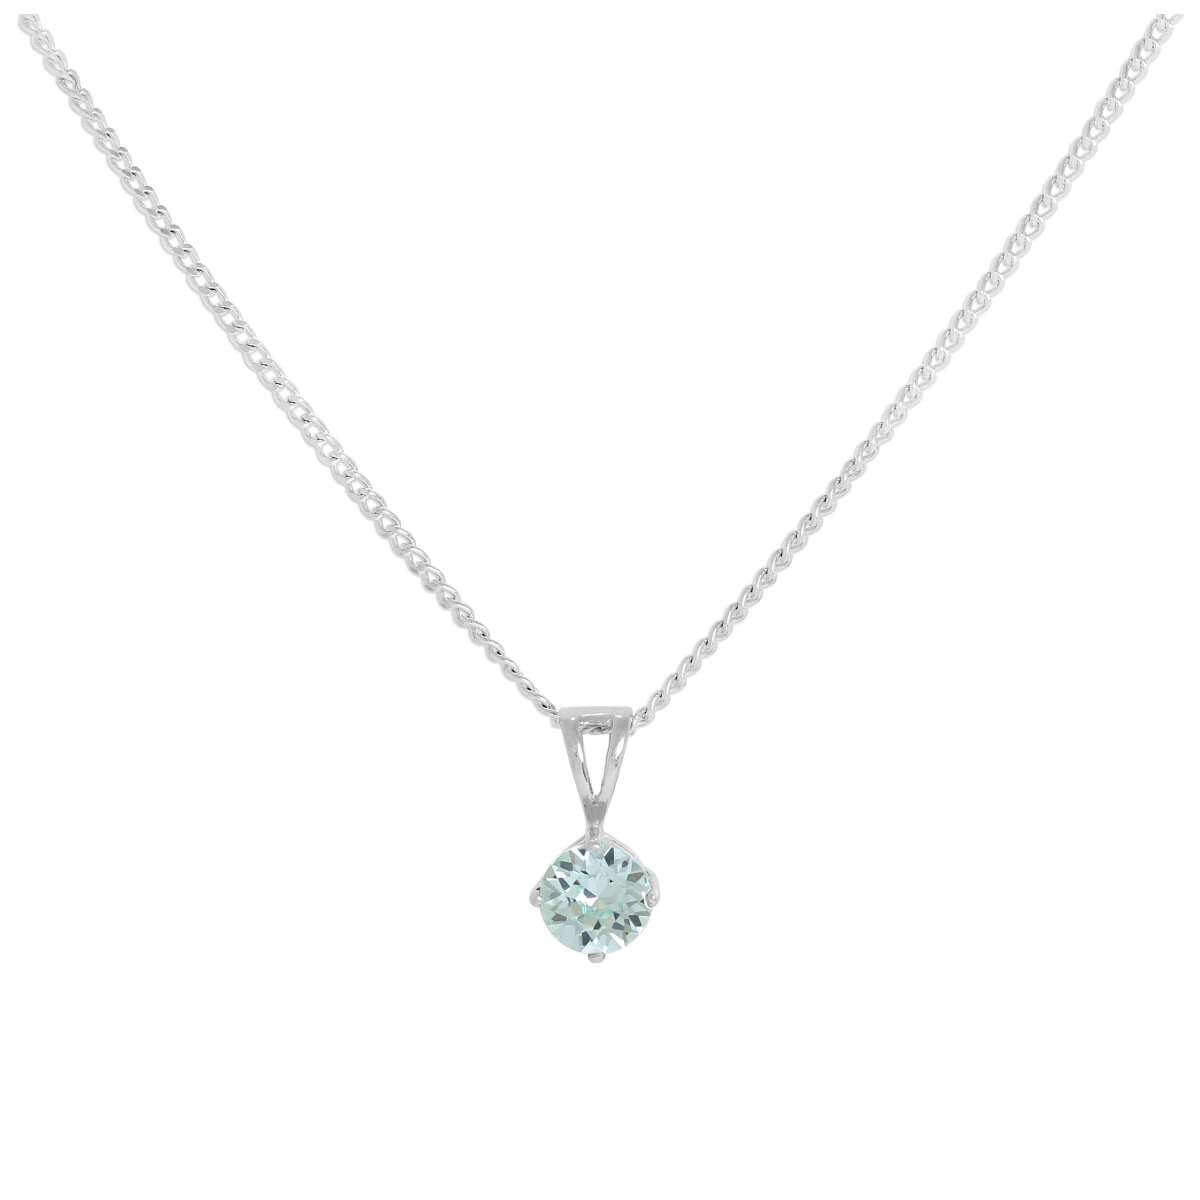 71863276d815 Sterling Silver   Aquamarine Crystal Made with Swarovski Elements Pendant  on Chain 16 - 24 Inches